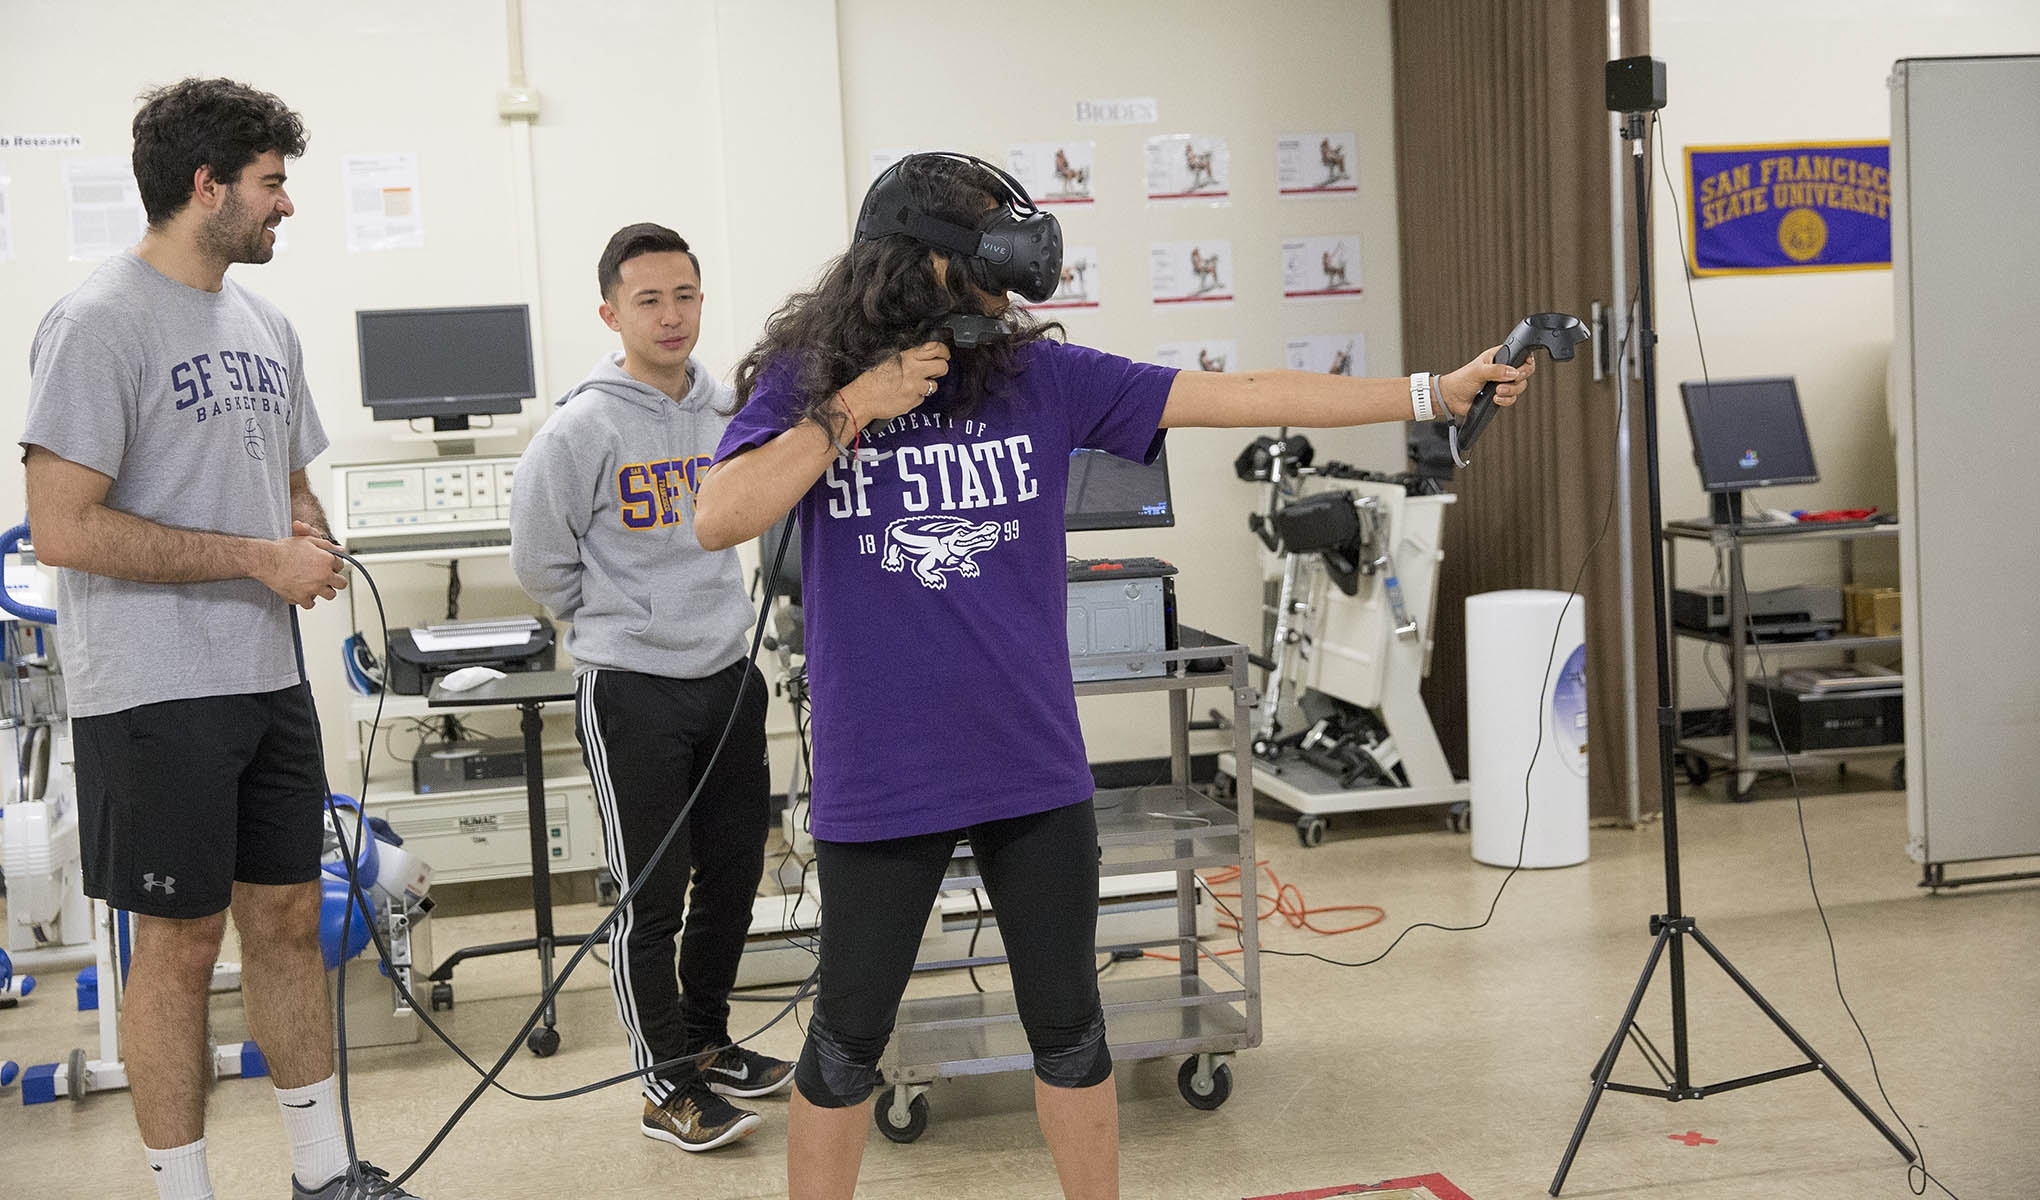 A purple-shirted student wearing a headset plays a virtual reality game as two other students look on.